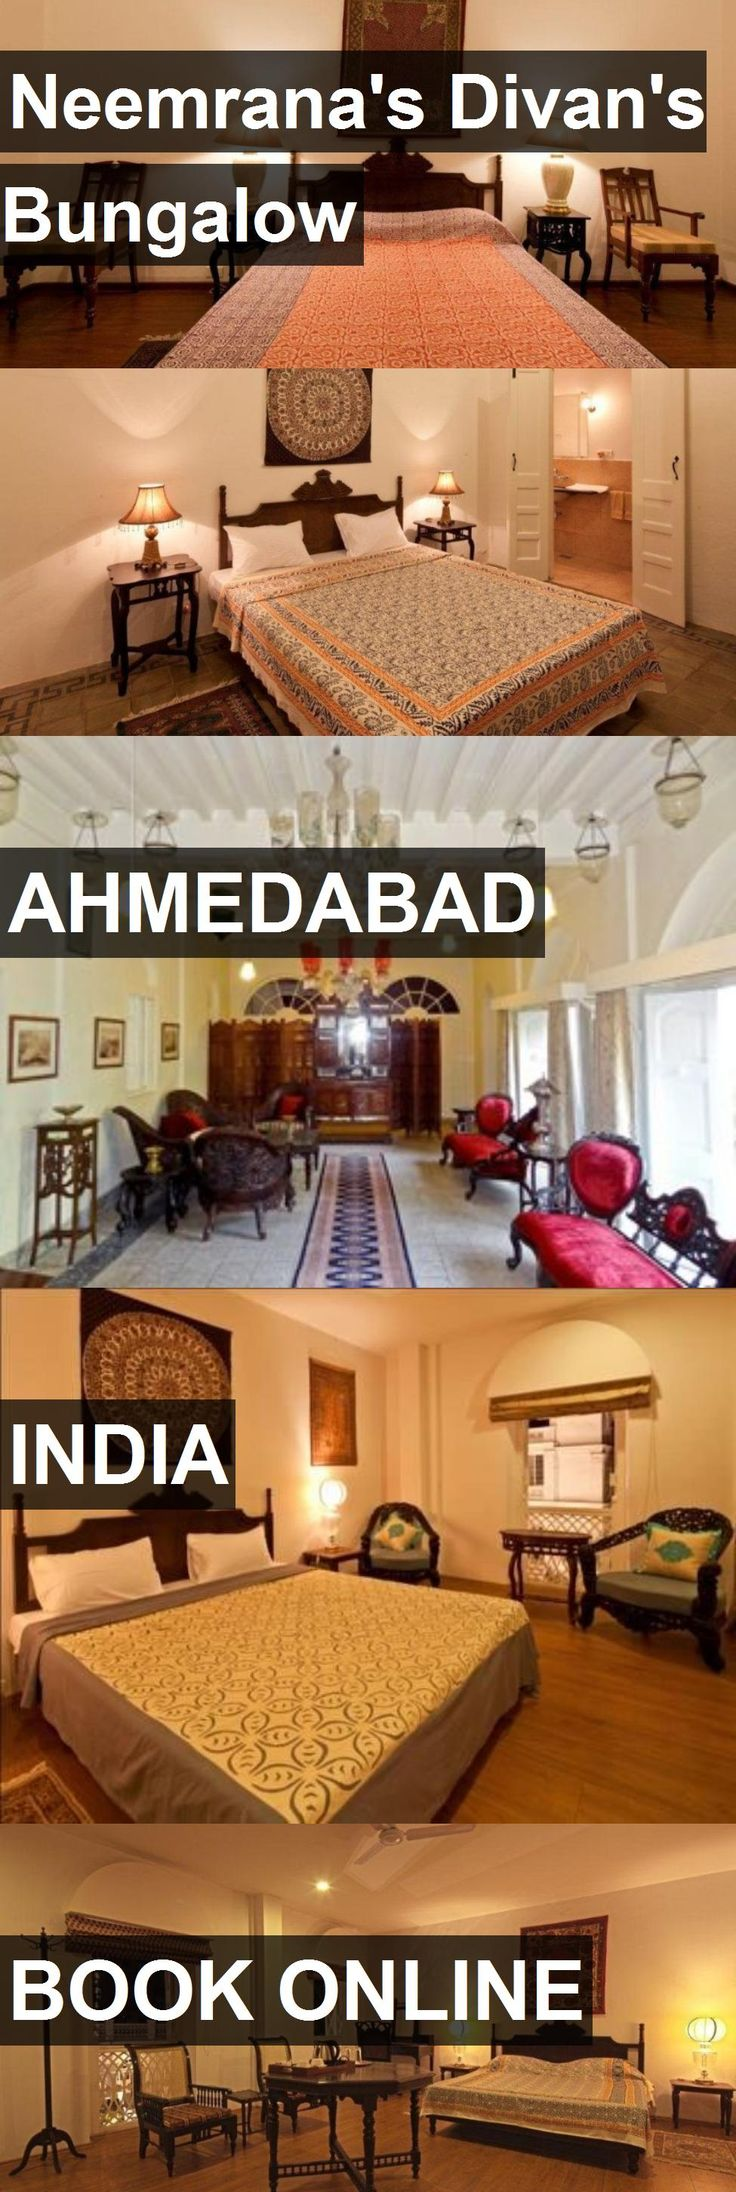 Hotel Neemrana's Divan's Bungalow in Ahmedabad, India. For more information, photos, reviews and best prices please follow the link. #India #Ahmedabad #travel #vacation #hotel